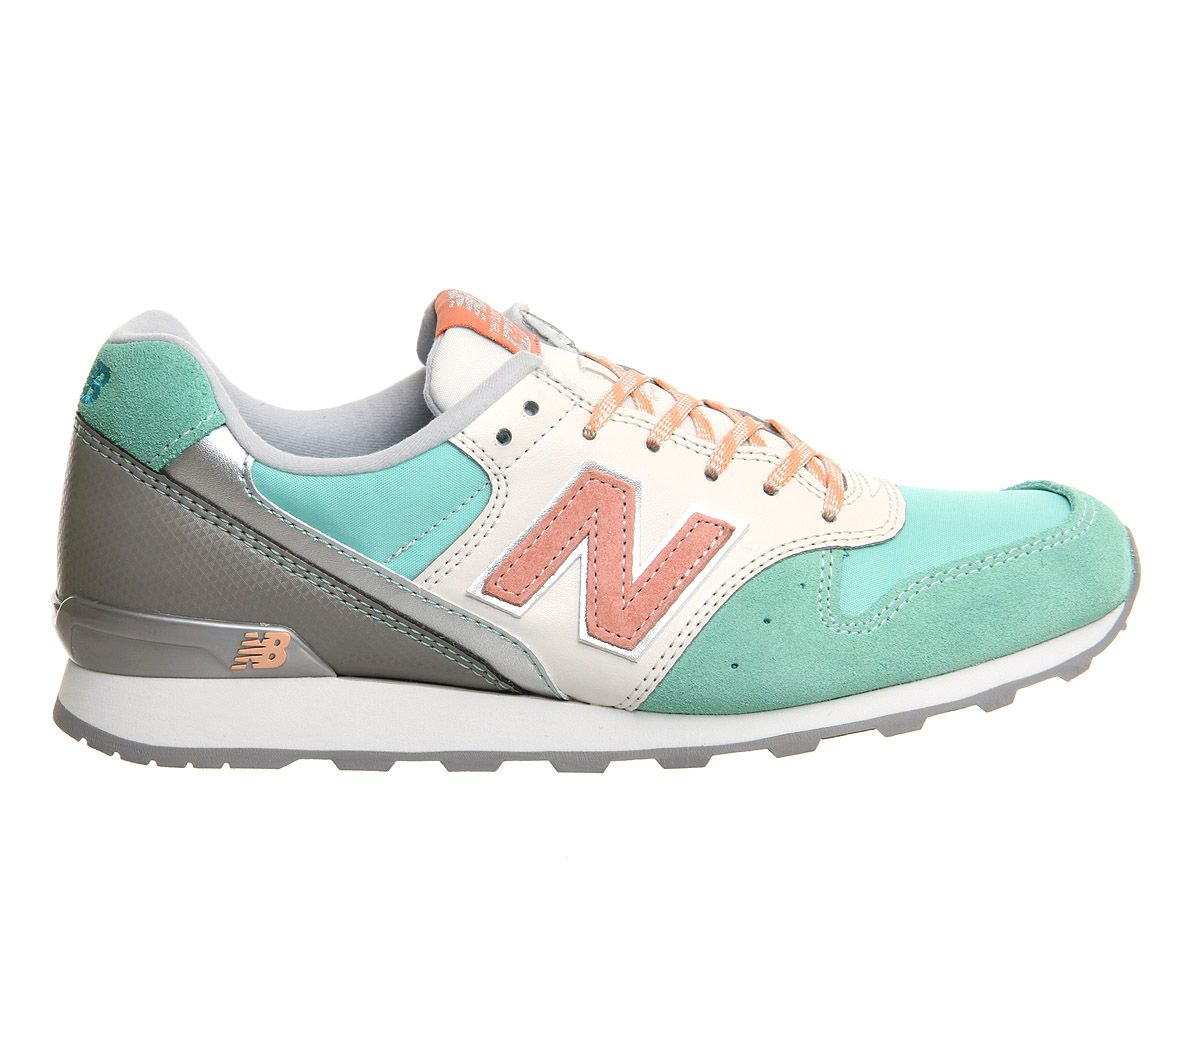 New Balance Wr996 Iced Lolly Mint Grey Pink - Hers trainers